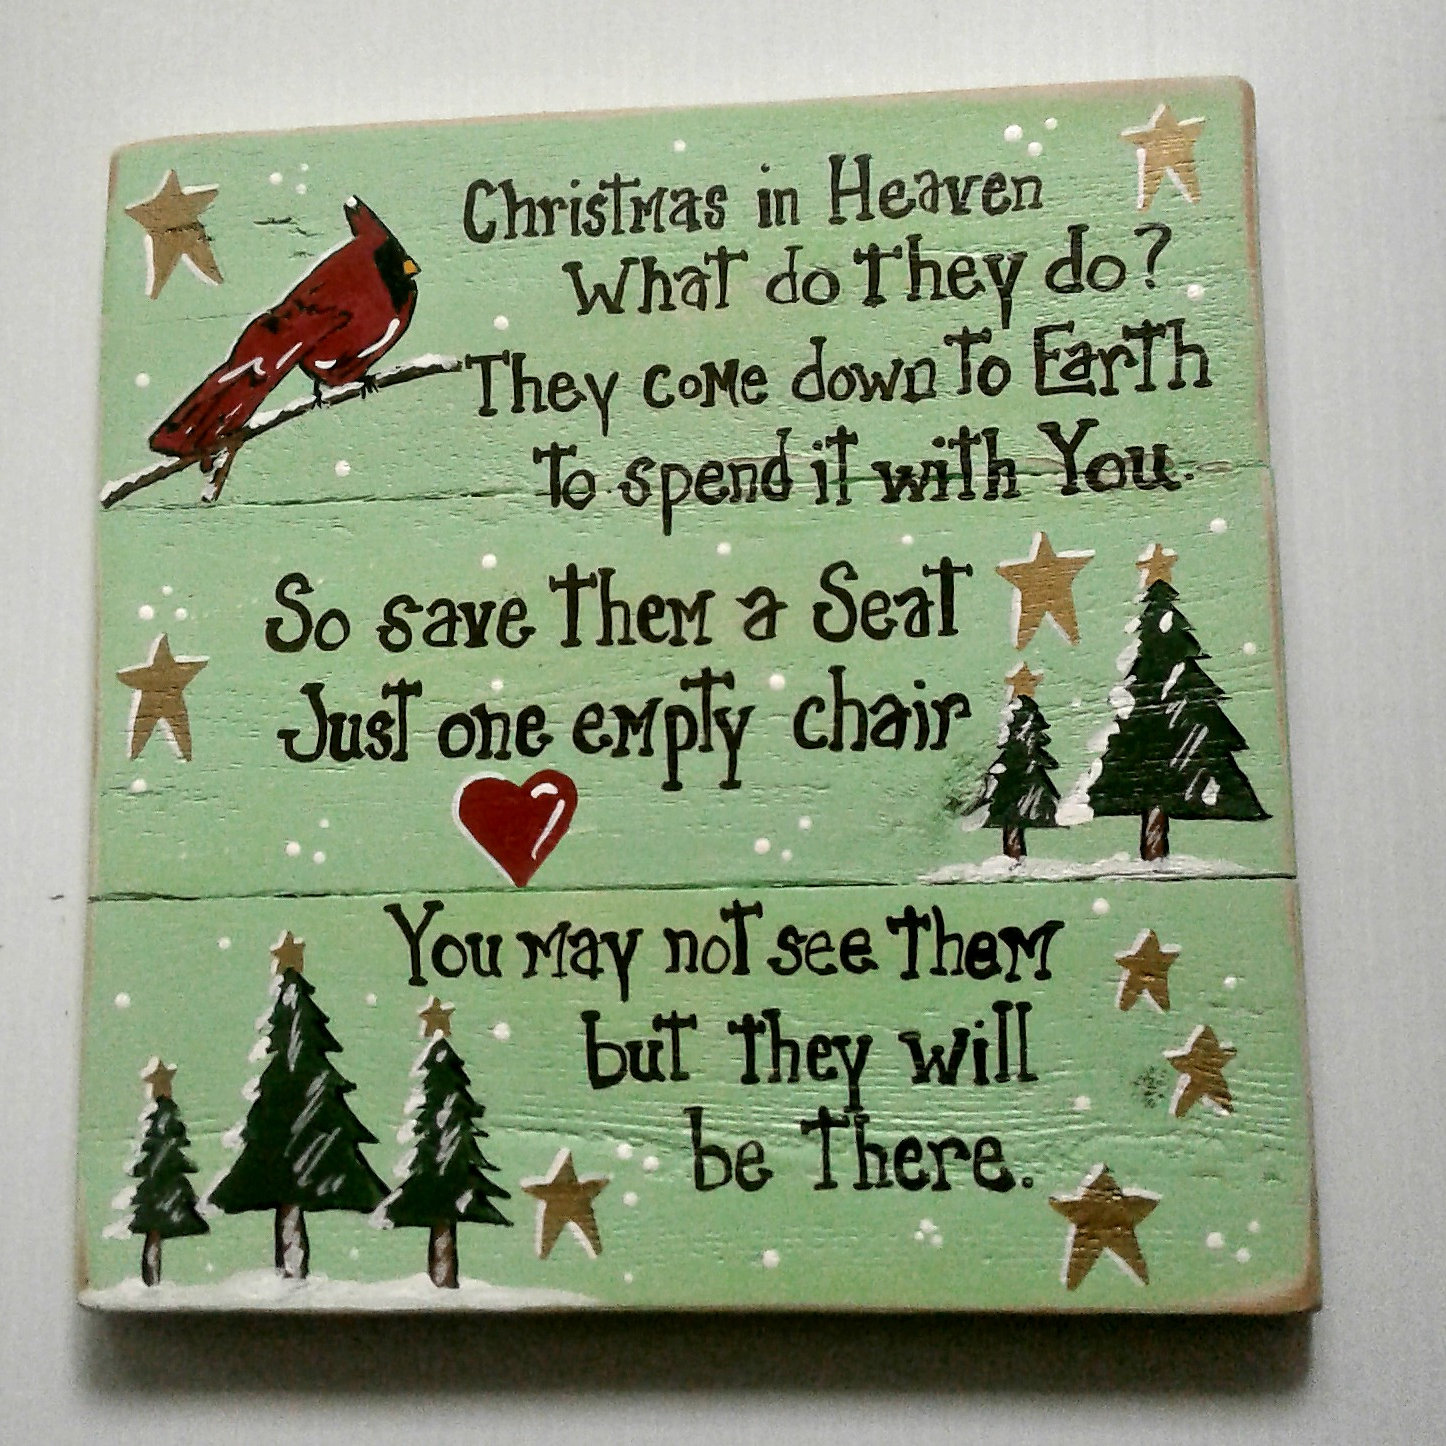 Christmas wooden christmas memories hanging sign sold out - A Christmas In Heaven Wood Sign With A Beautiful Red Cardinal Designed For You To Make New Memories And Traditions For Your Iholidays